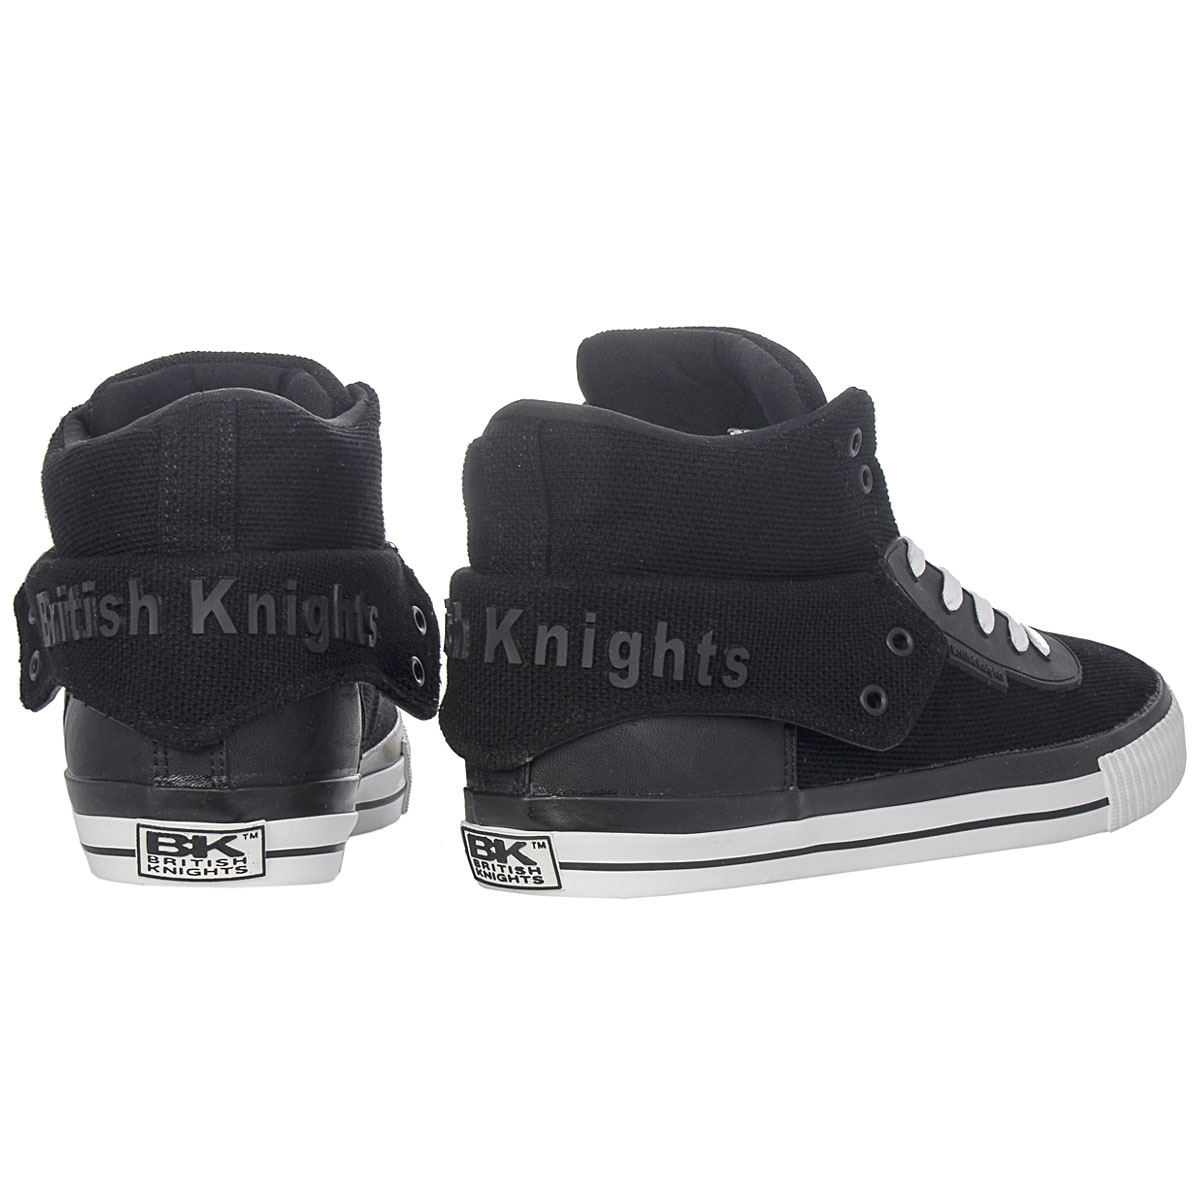 bk british knights roco schuhe schwarz herren sneaker high turnschuhe freizeit ebay. Black Bedroom Furniture Sets. Home Design Ideas